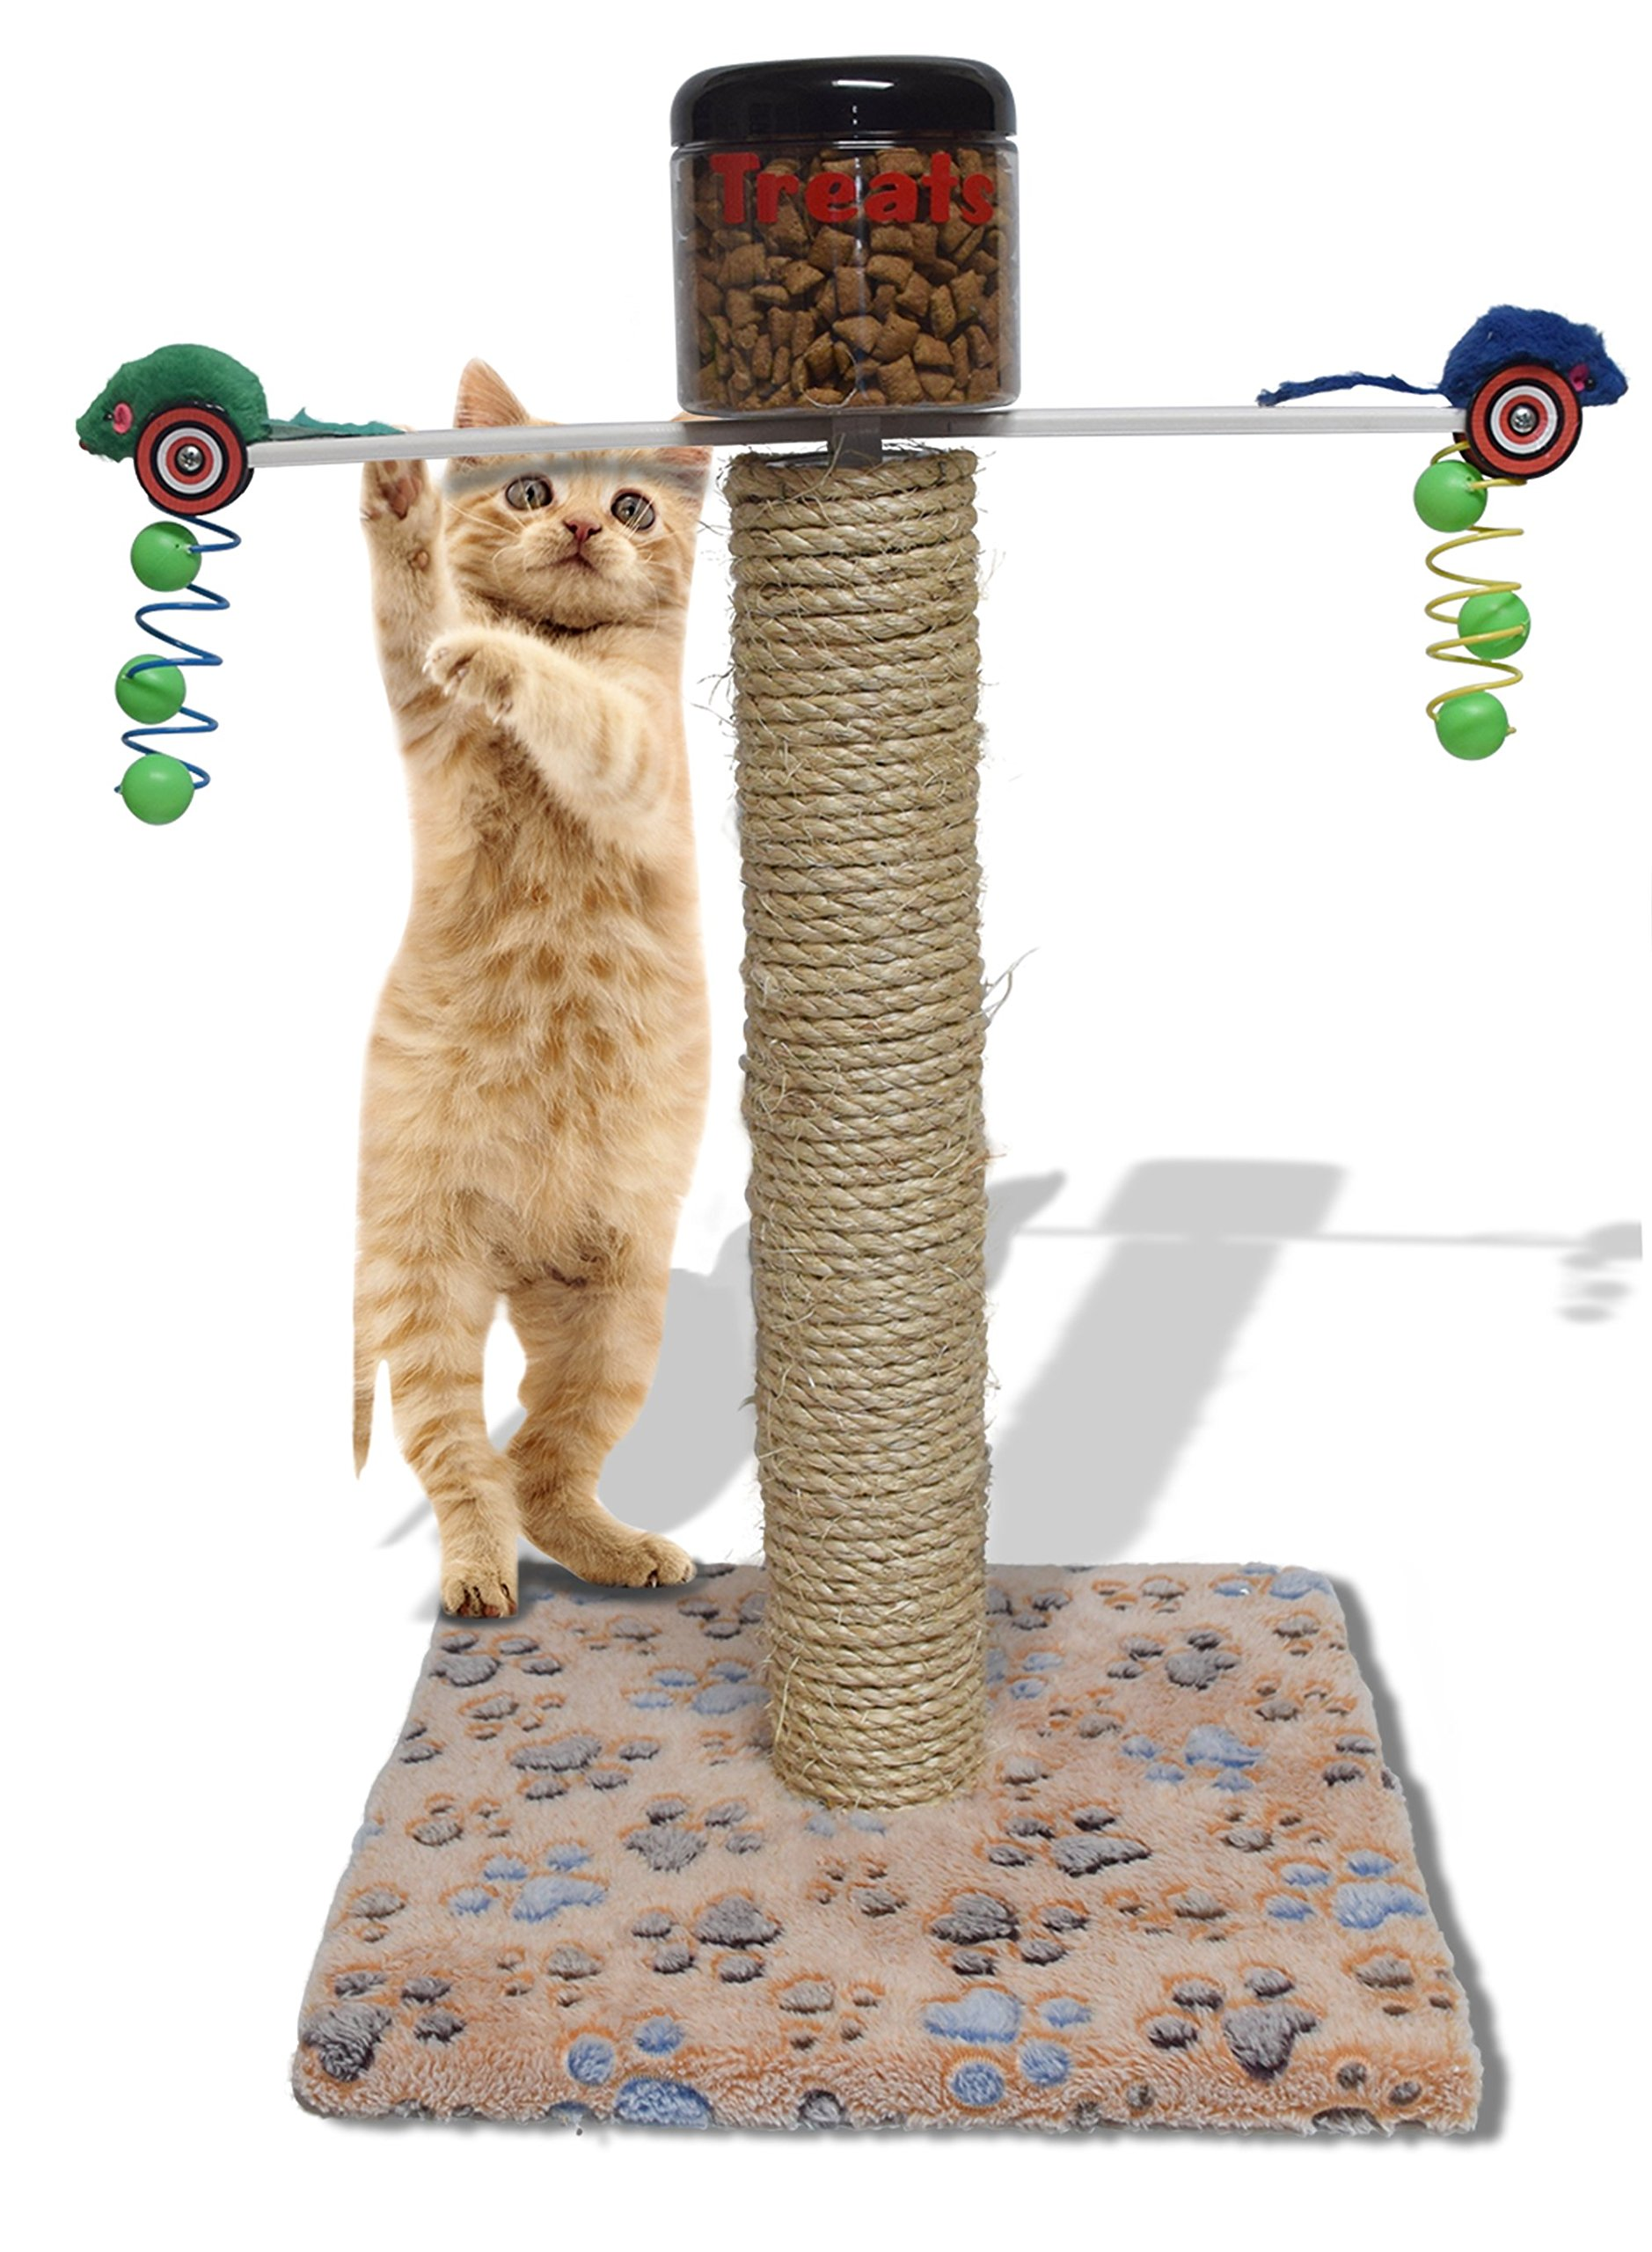 Health Cat Food Toy / Allows your animal to WORK for their FOOD / Vet Recommended for this interactive toy